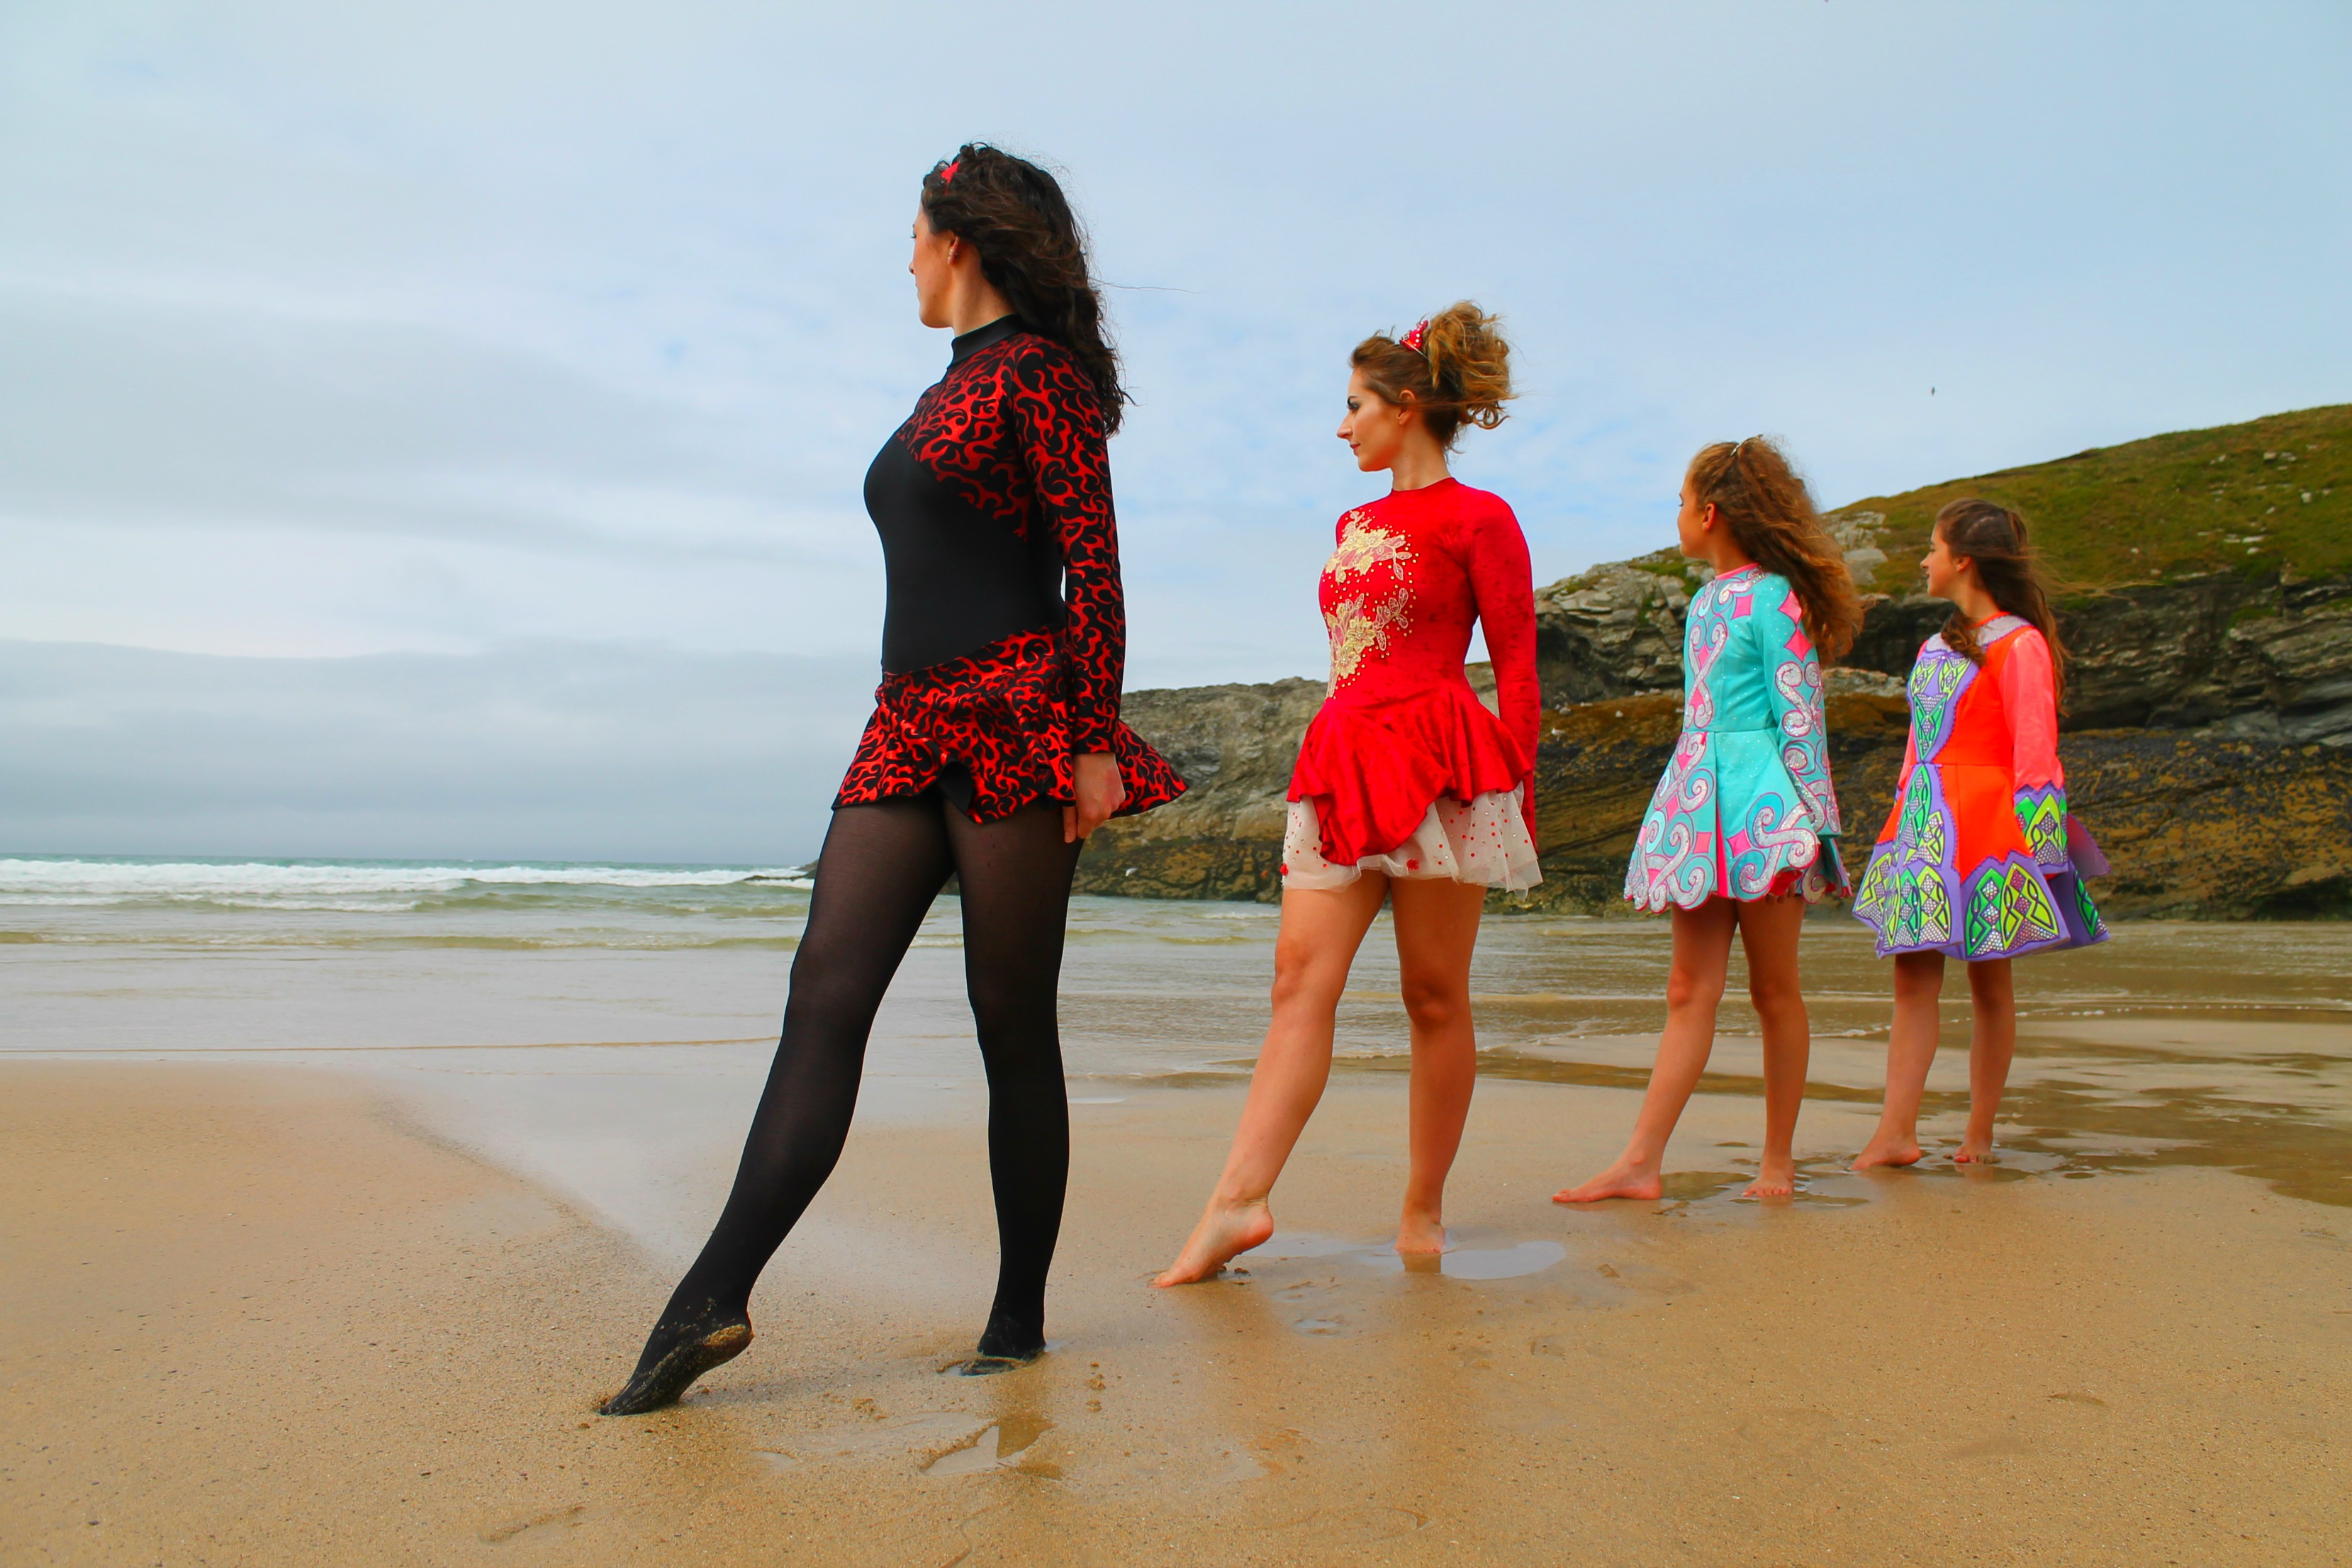 Porth beach Irish Dancers